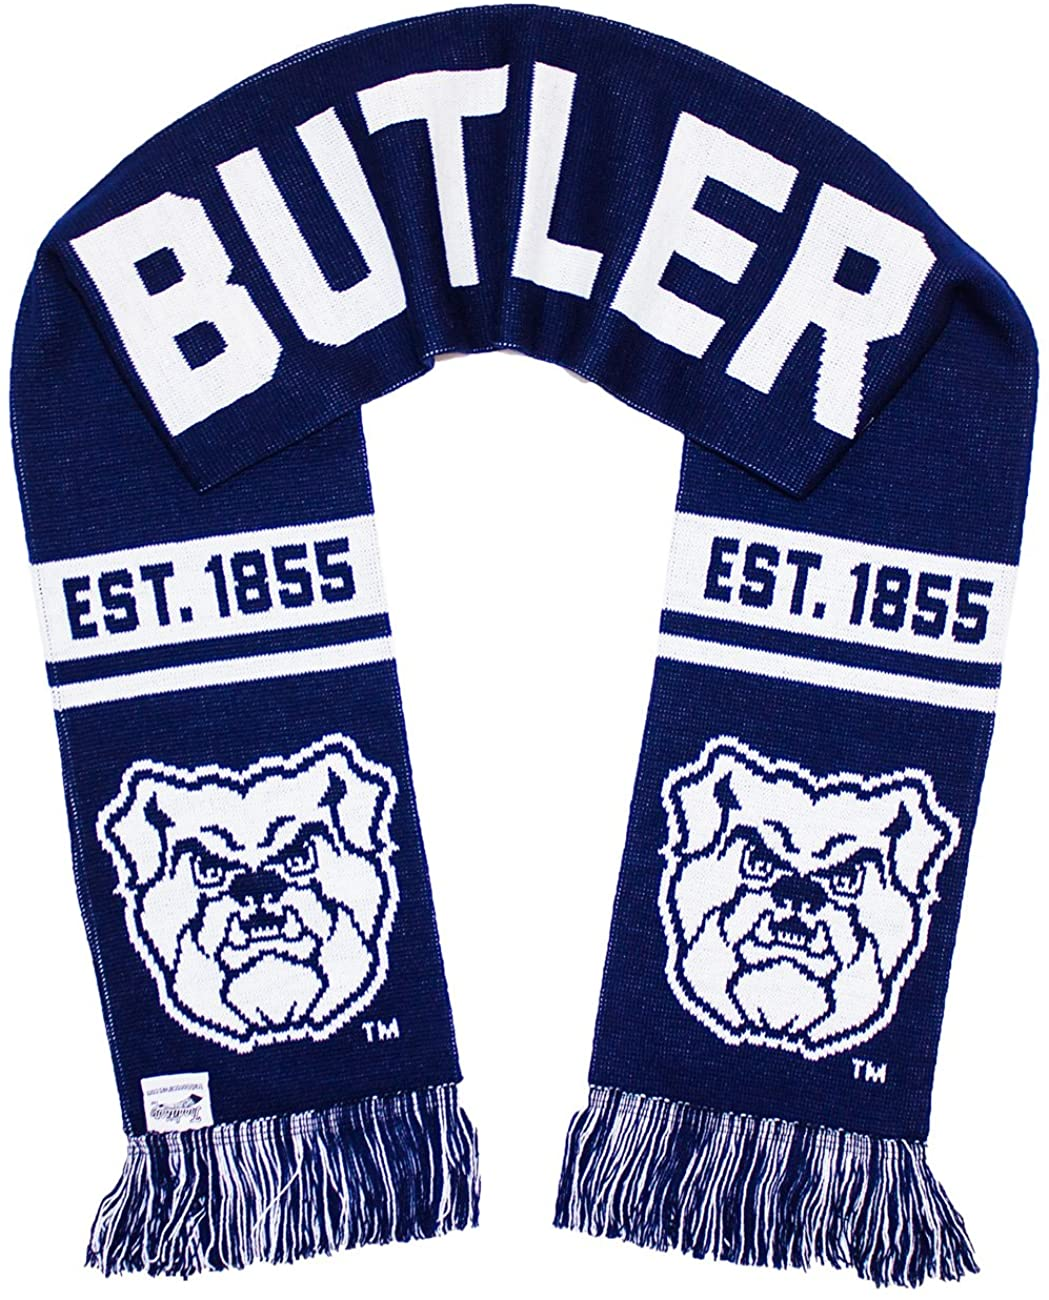 Tradition Scarves Butler University Scarf - Butler Bulldogs Knitted Classic